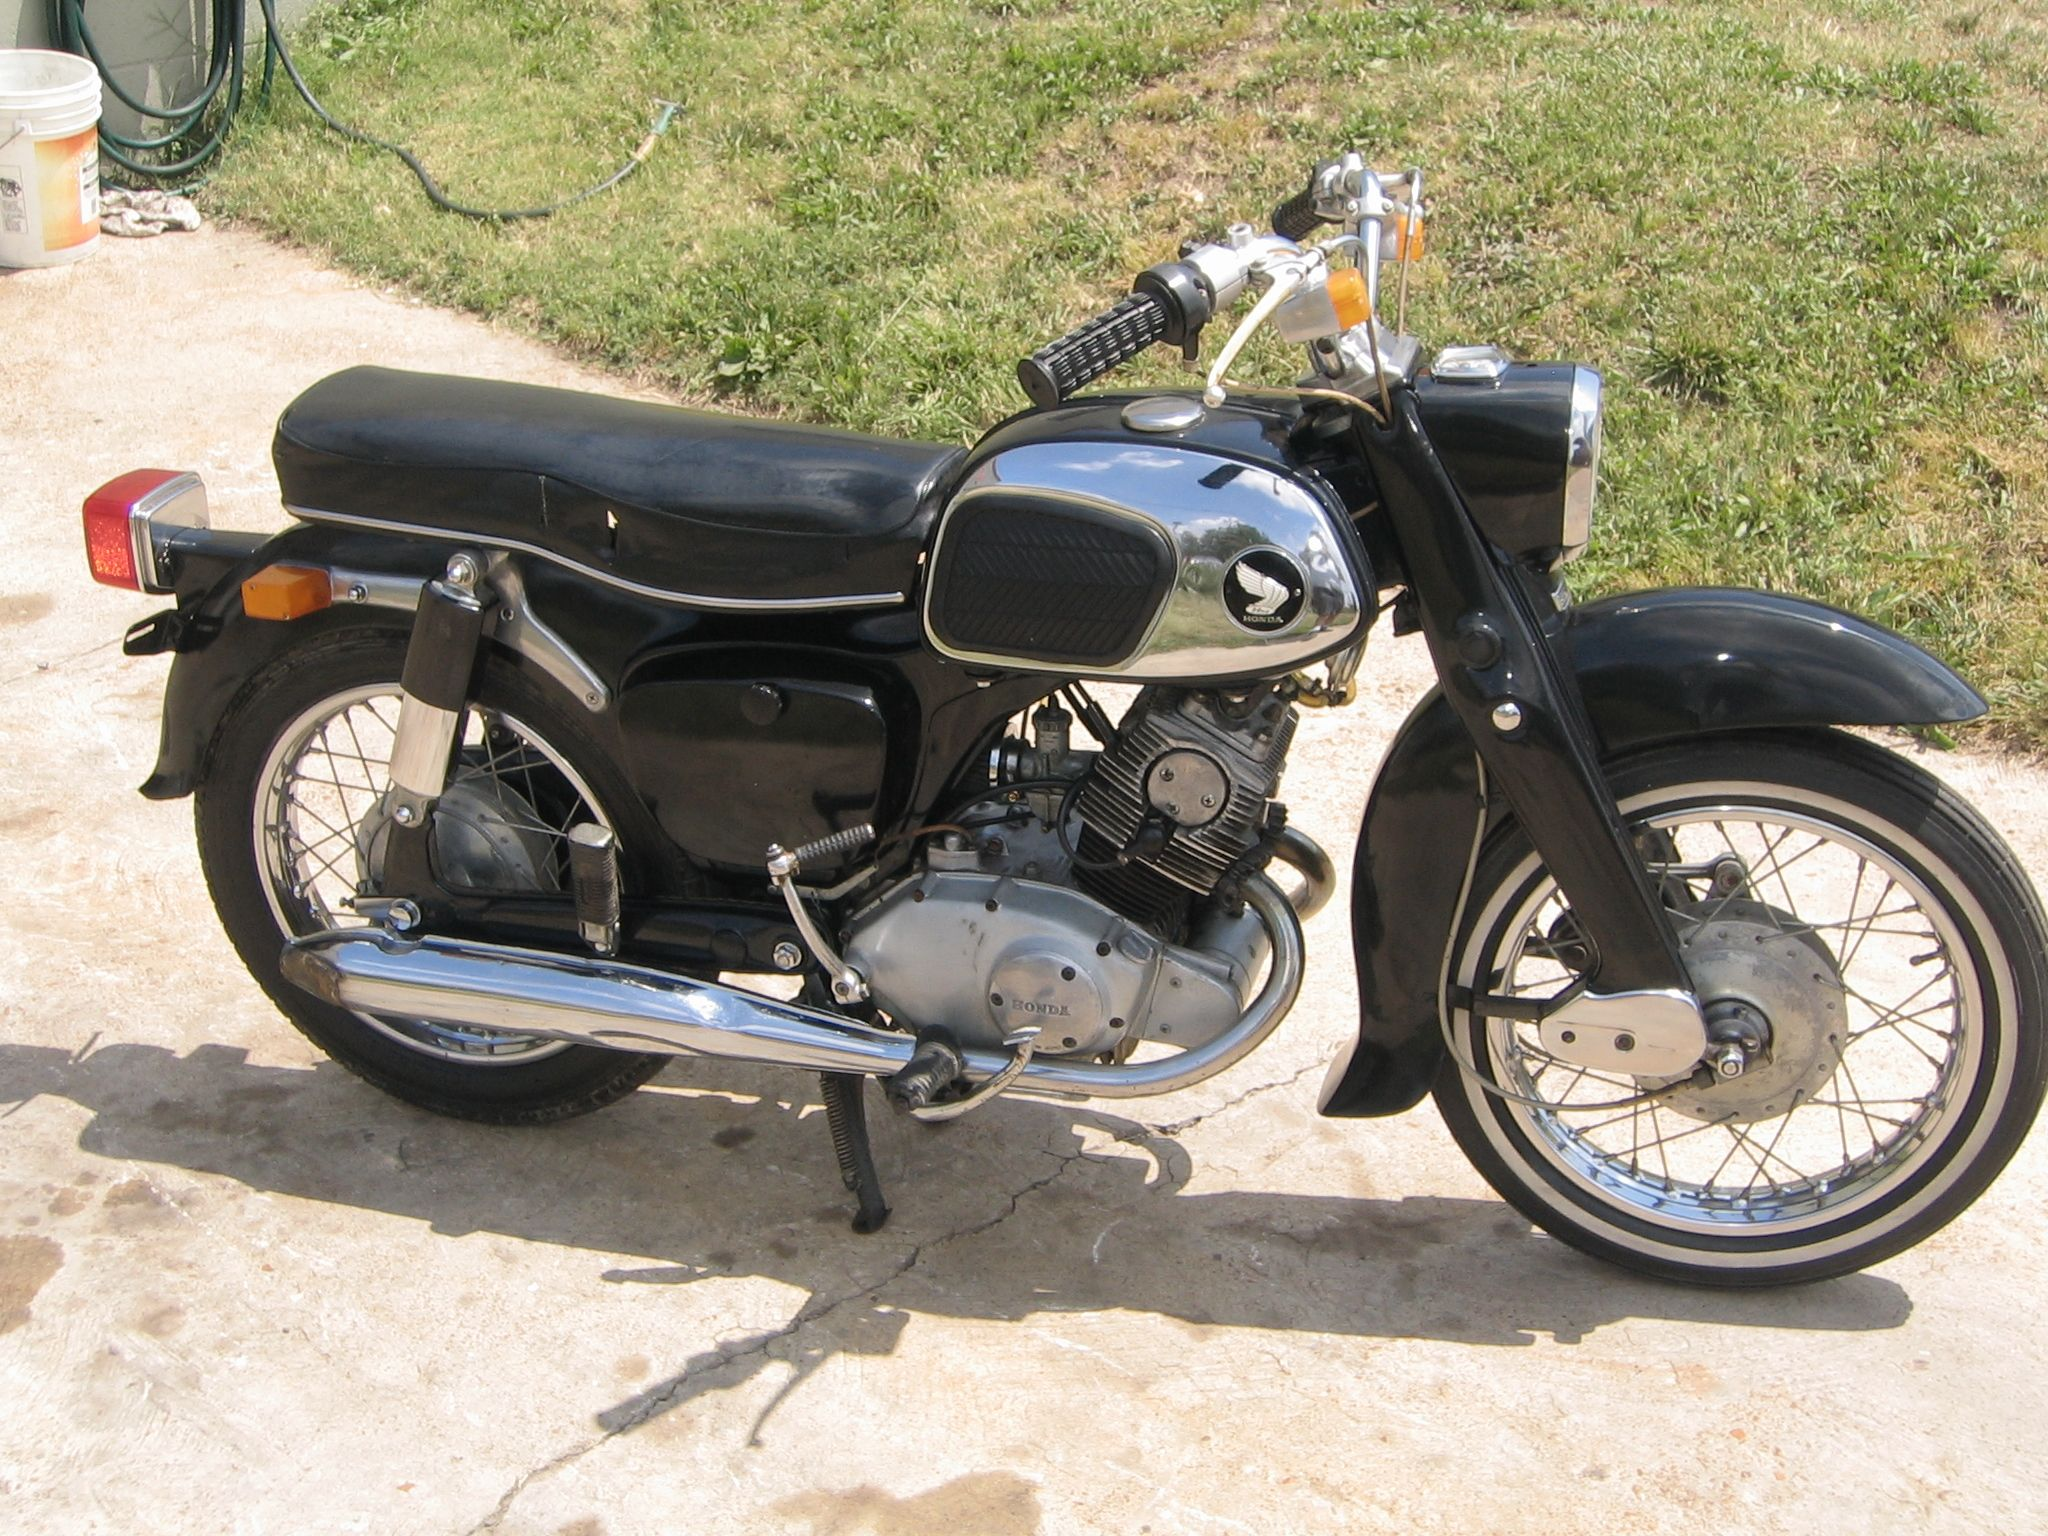 1966 Honda Benly 160 Motorcycles Cars And Trucks